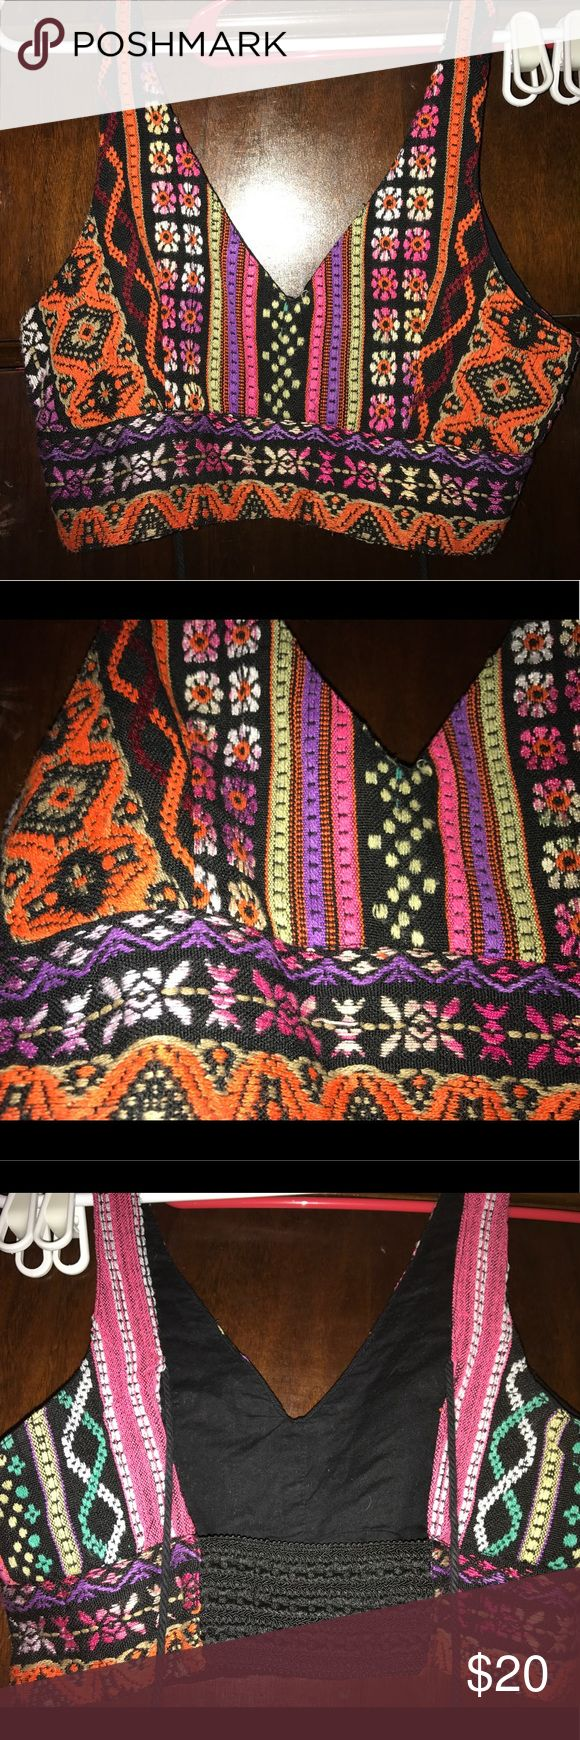 Aztec crop top Perfect crop top for art or music festival Urban Outfitters Tops Crop Tops